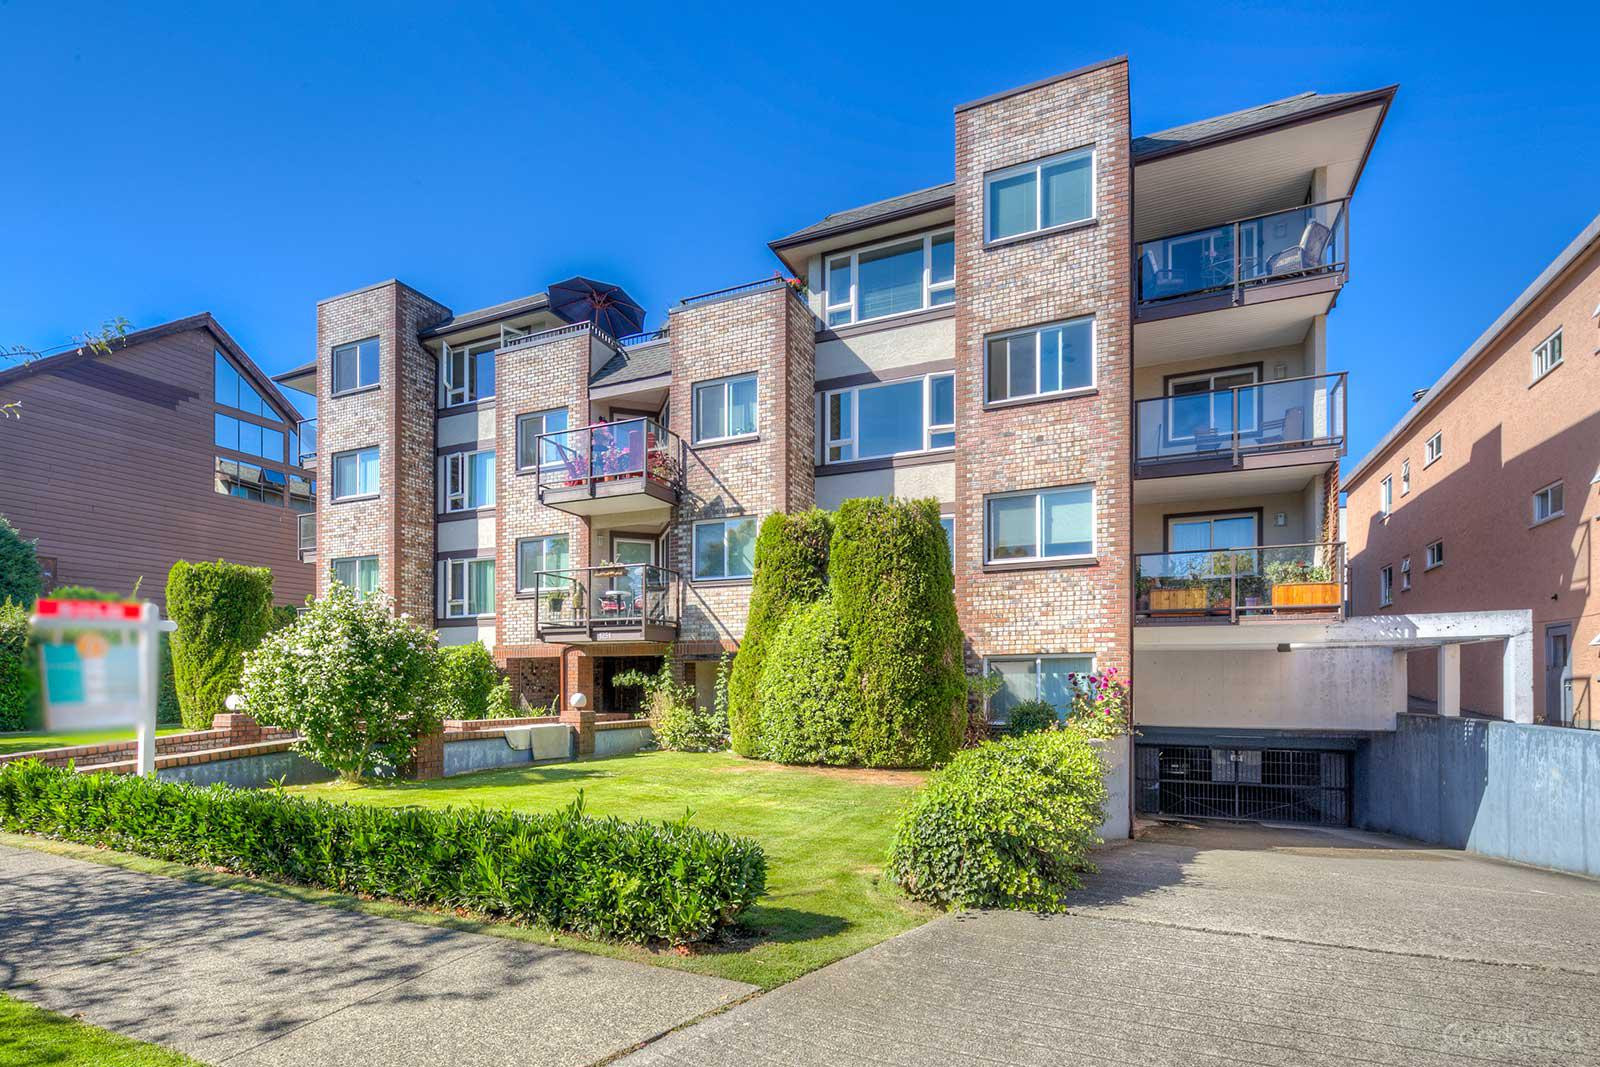 West Granville Manor at 1251 W 71st Ave, Vancouver 0